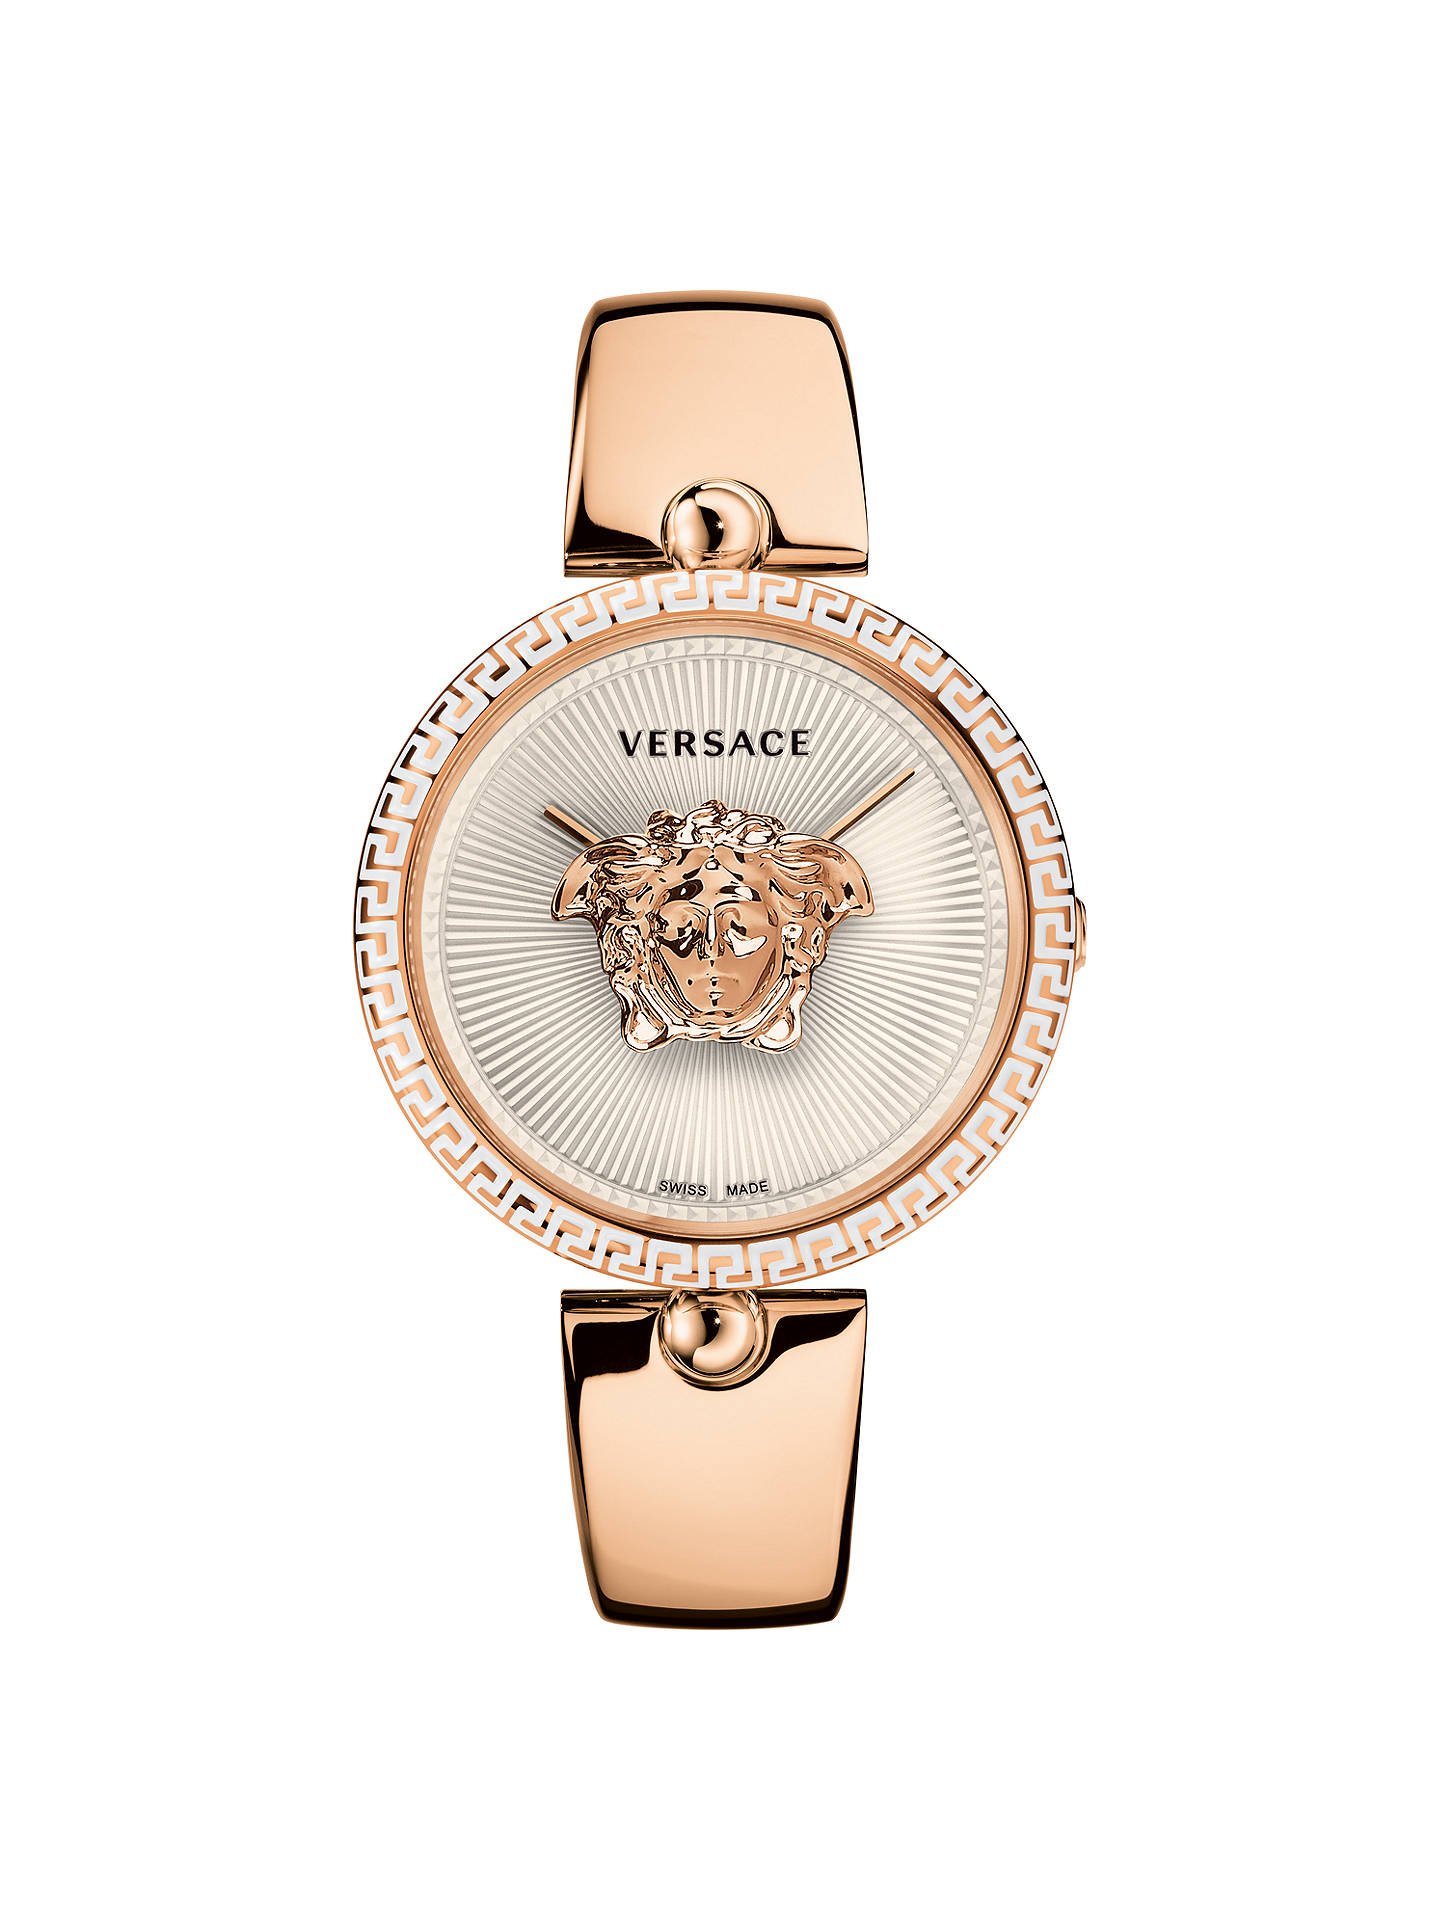 6cf4aaca1d Versace VCO110017 Women's Palazzo Bangle Strap Watch, Rose Gold/White